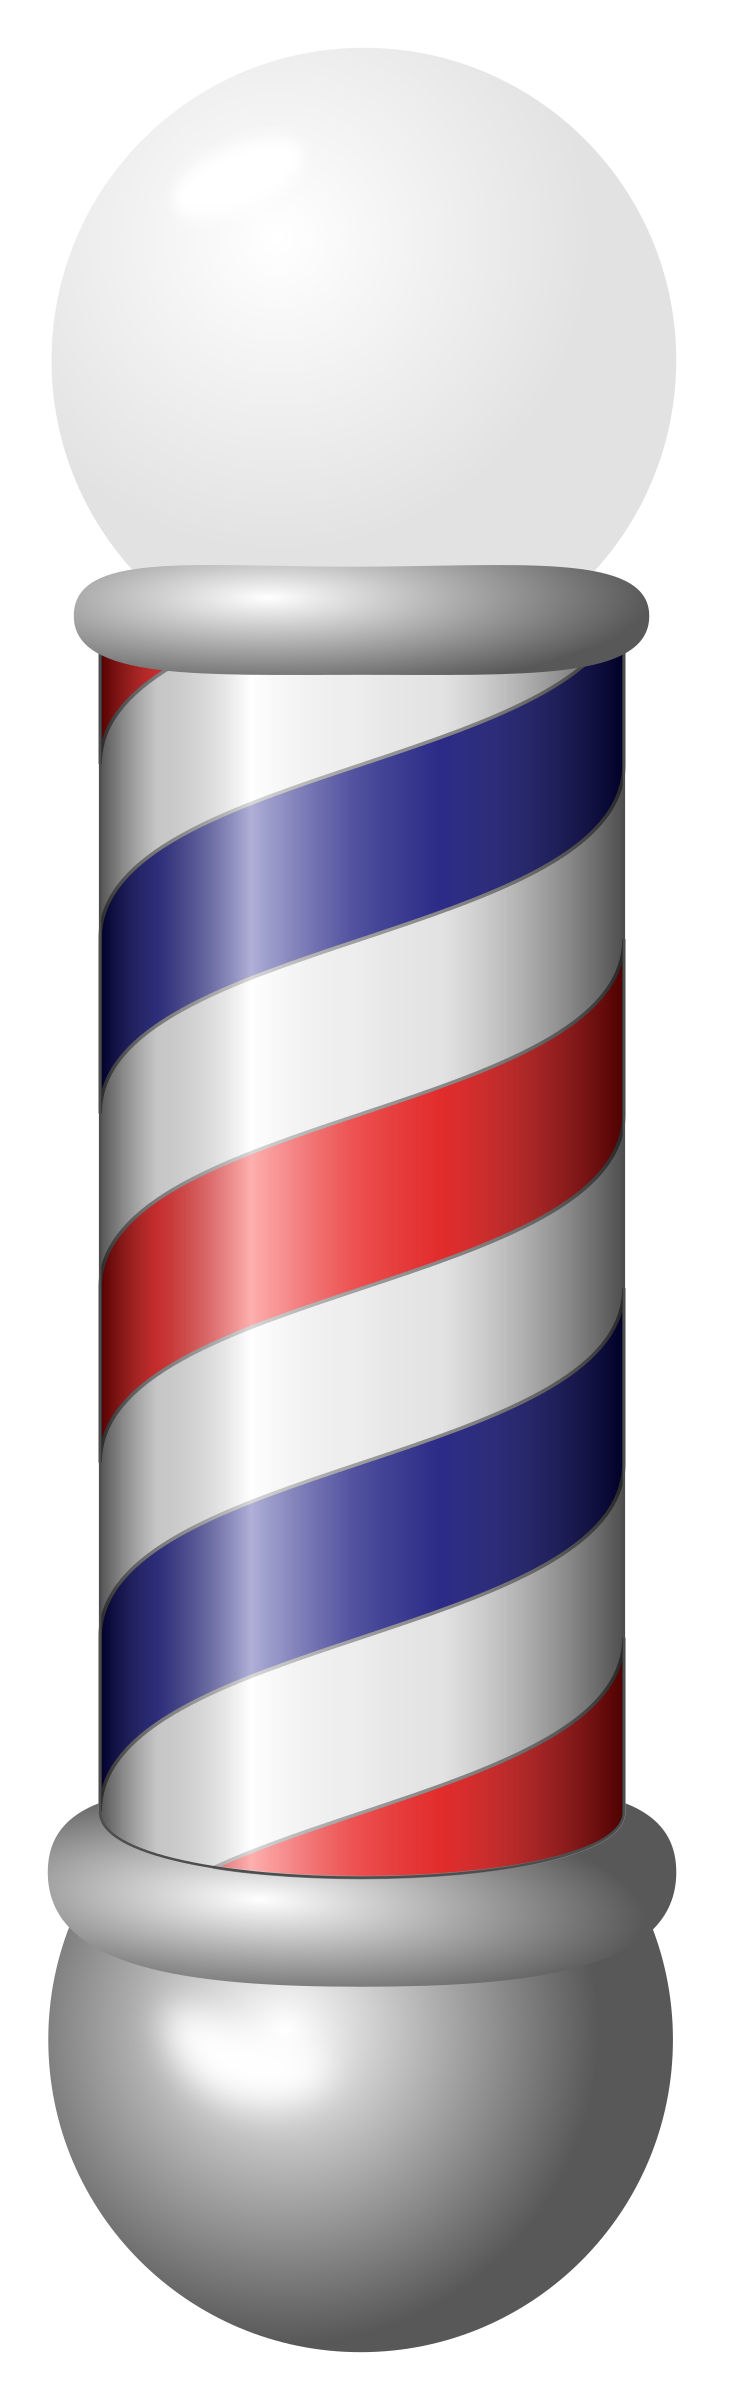 Clipart - barber pole - Barber Pole PNG HD - Barber PNG HD